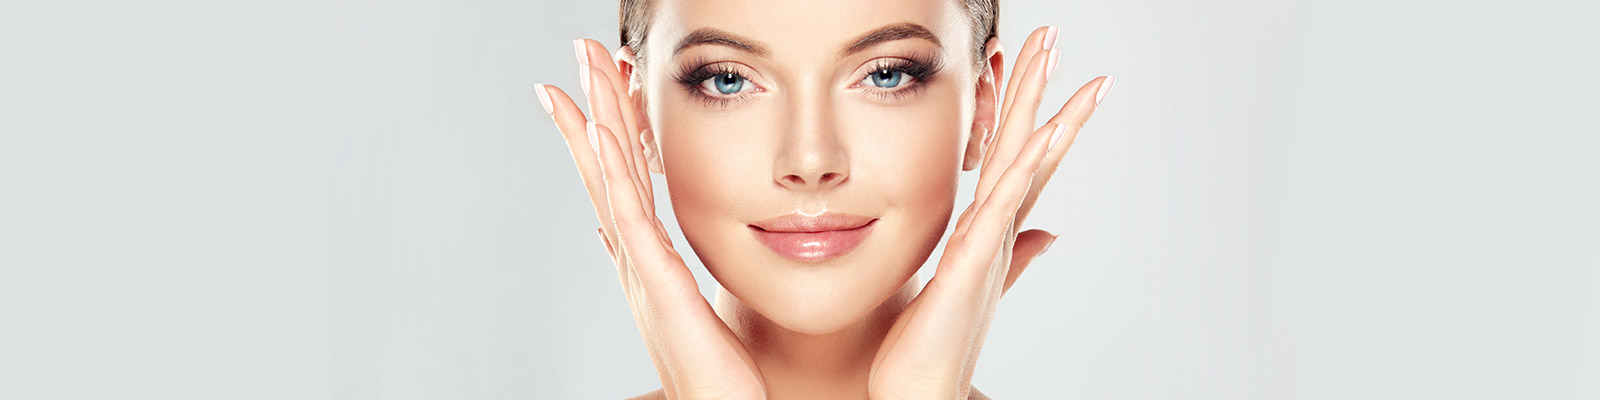 mprove your skin with the Sciton BBL Hero in Chagrin Falls, OH